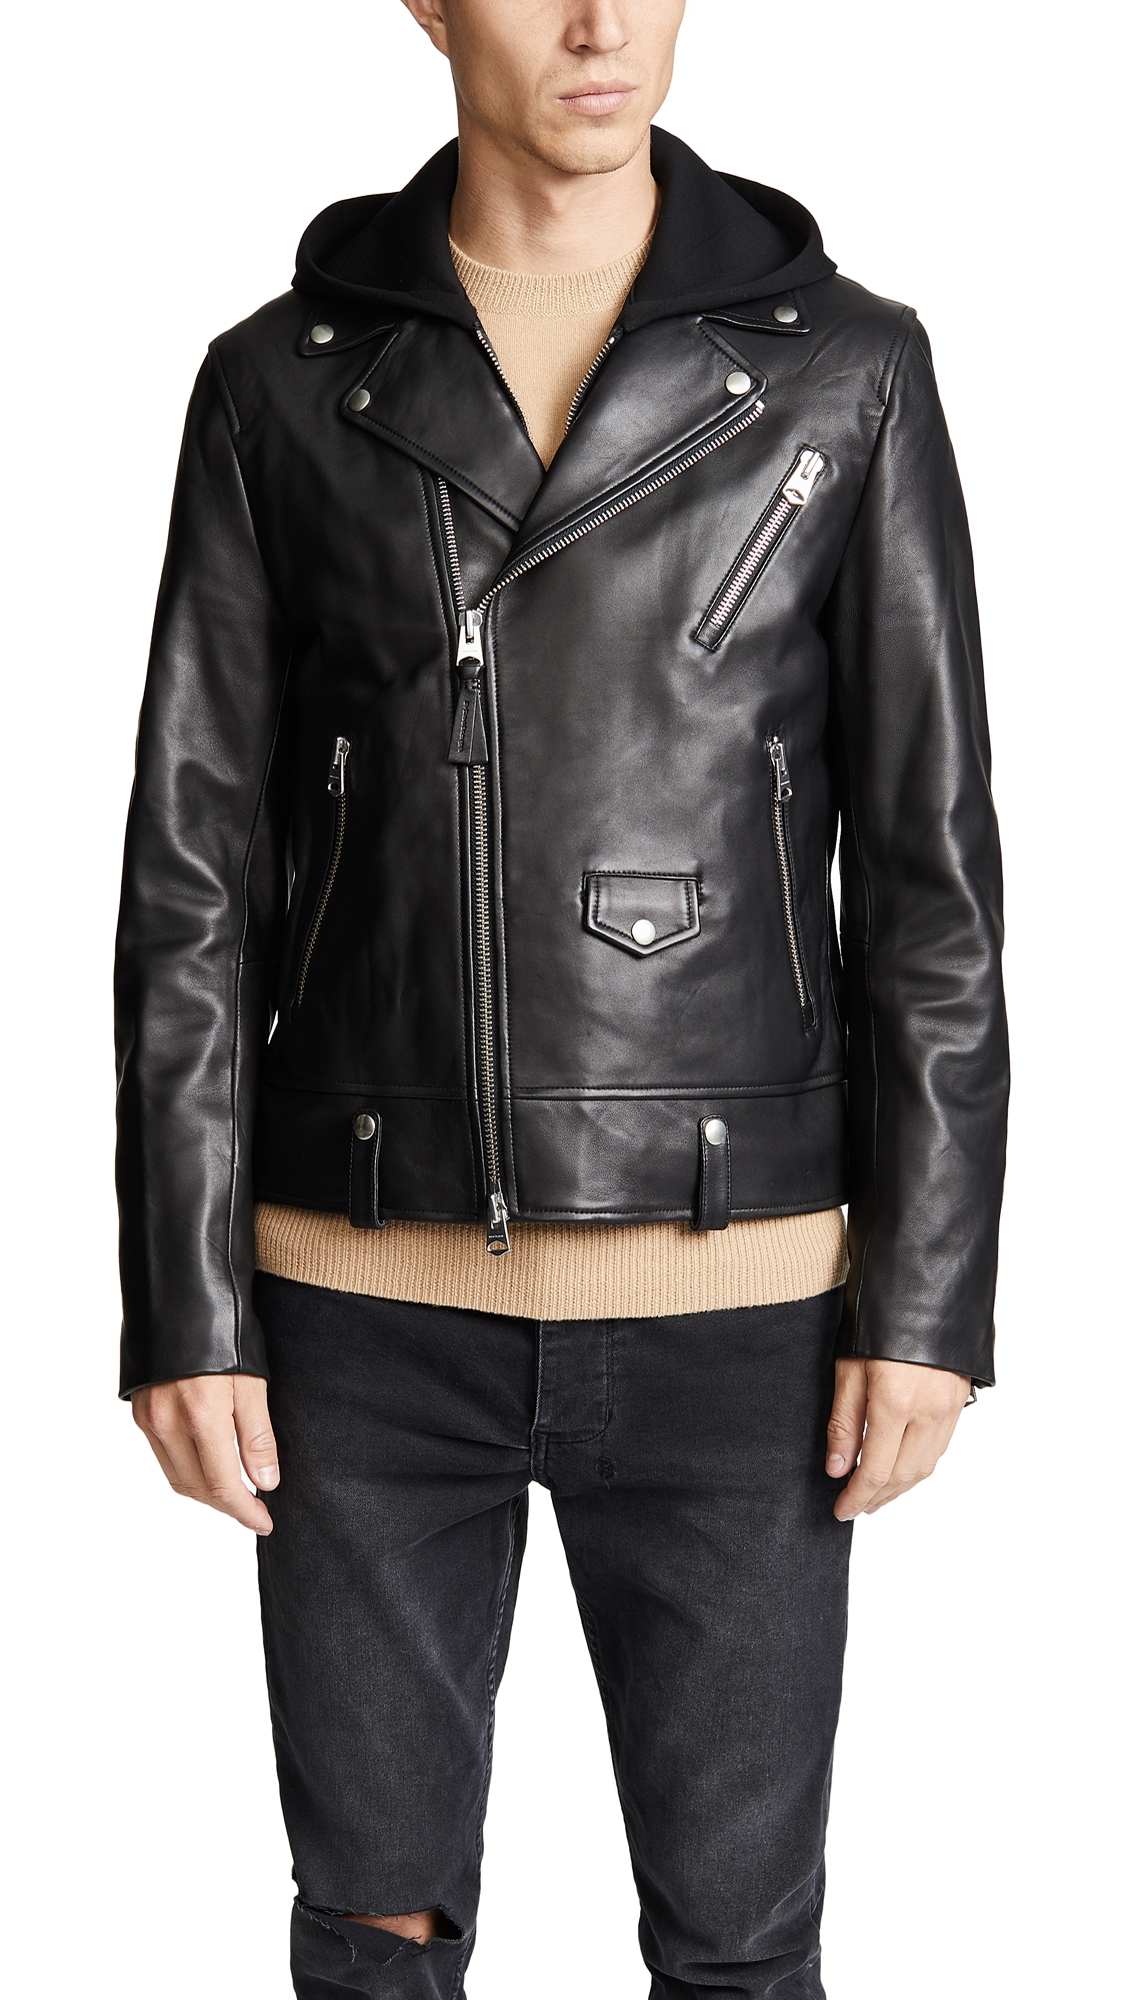 MACKAGE MAGNUS LEATHER JACKET